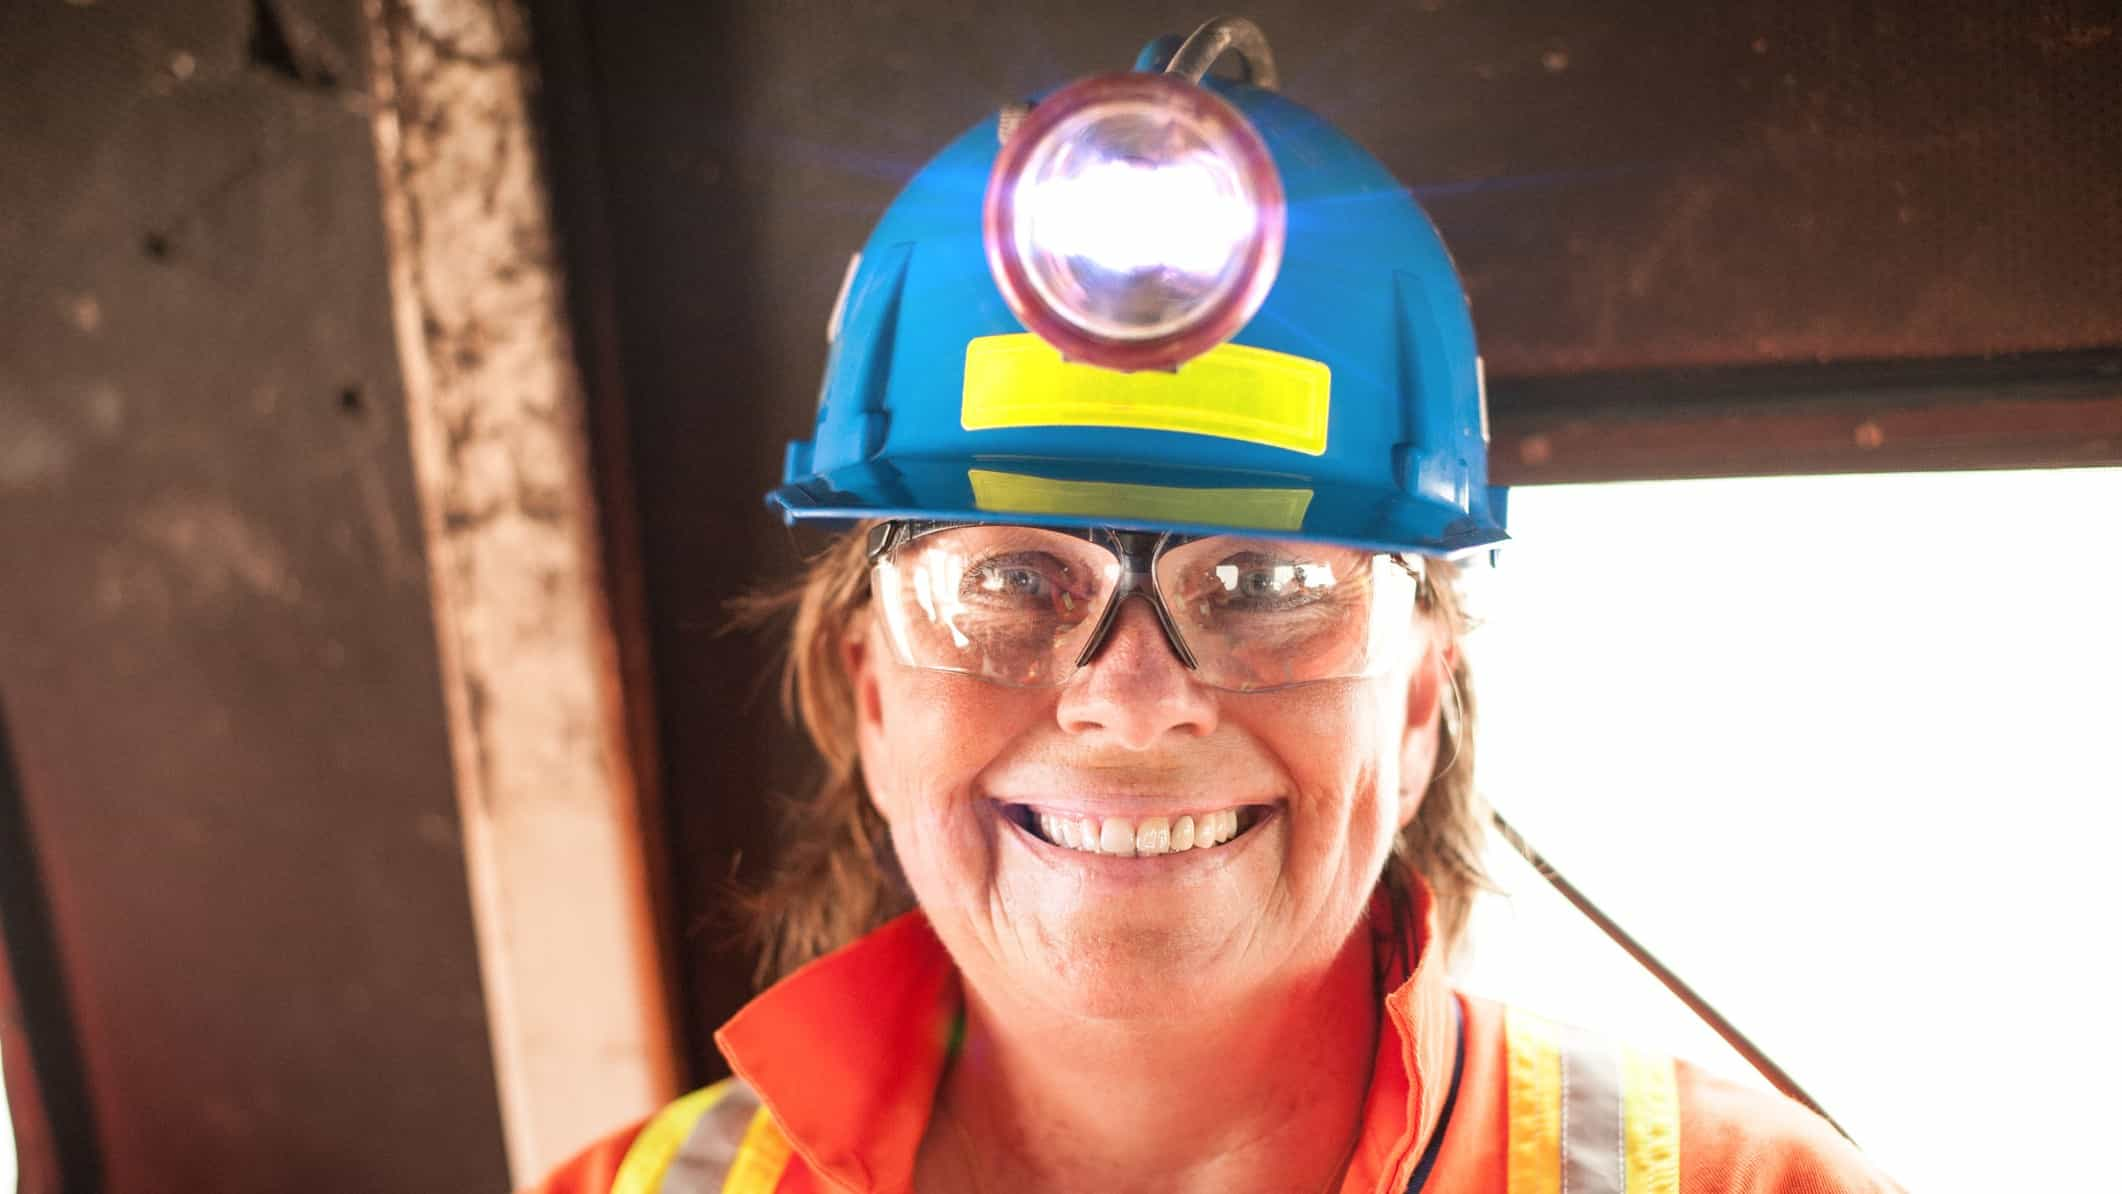 rising mining asx share price represented by happy woman miner in hard hat